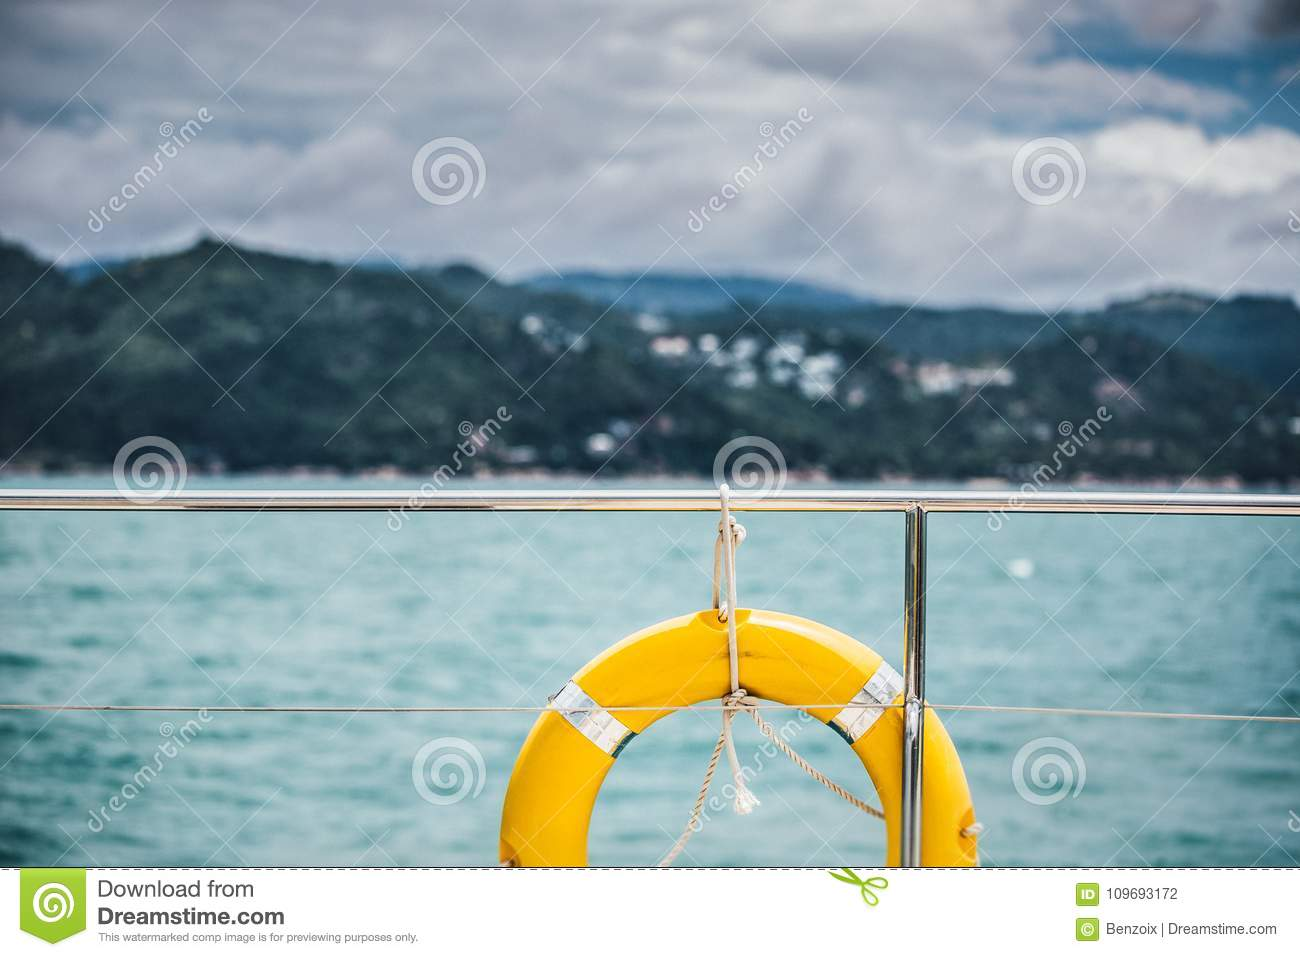 Close-up Yellow life ring hanging on boat with ocean background.